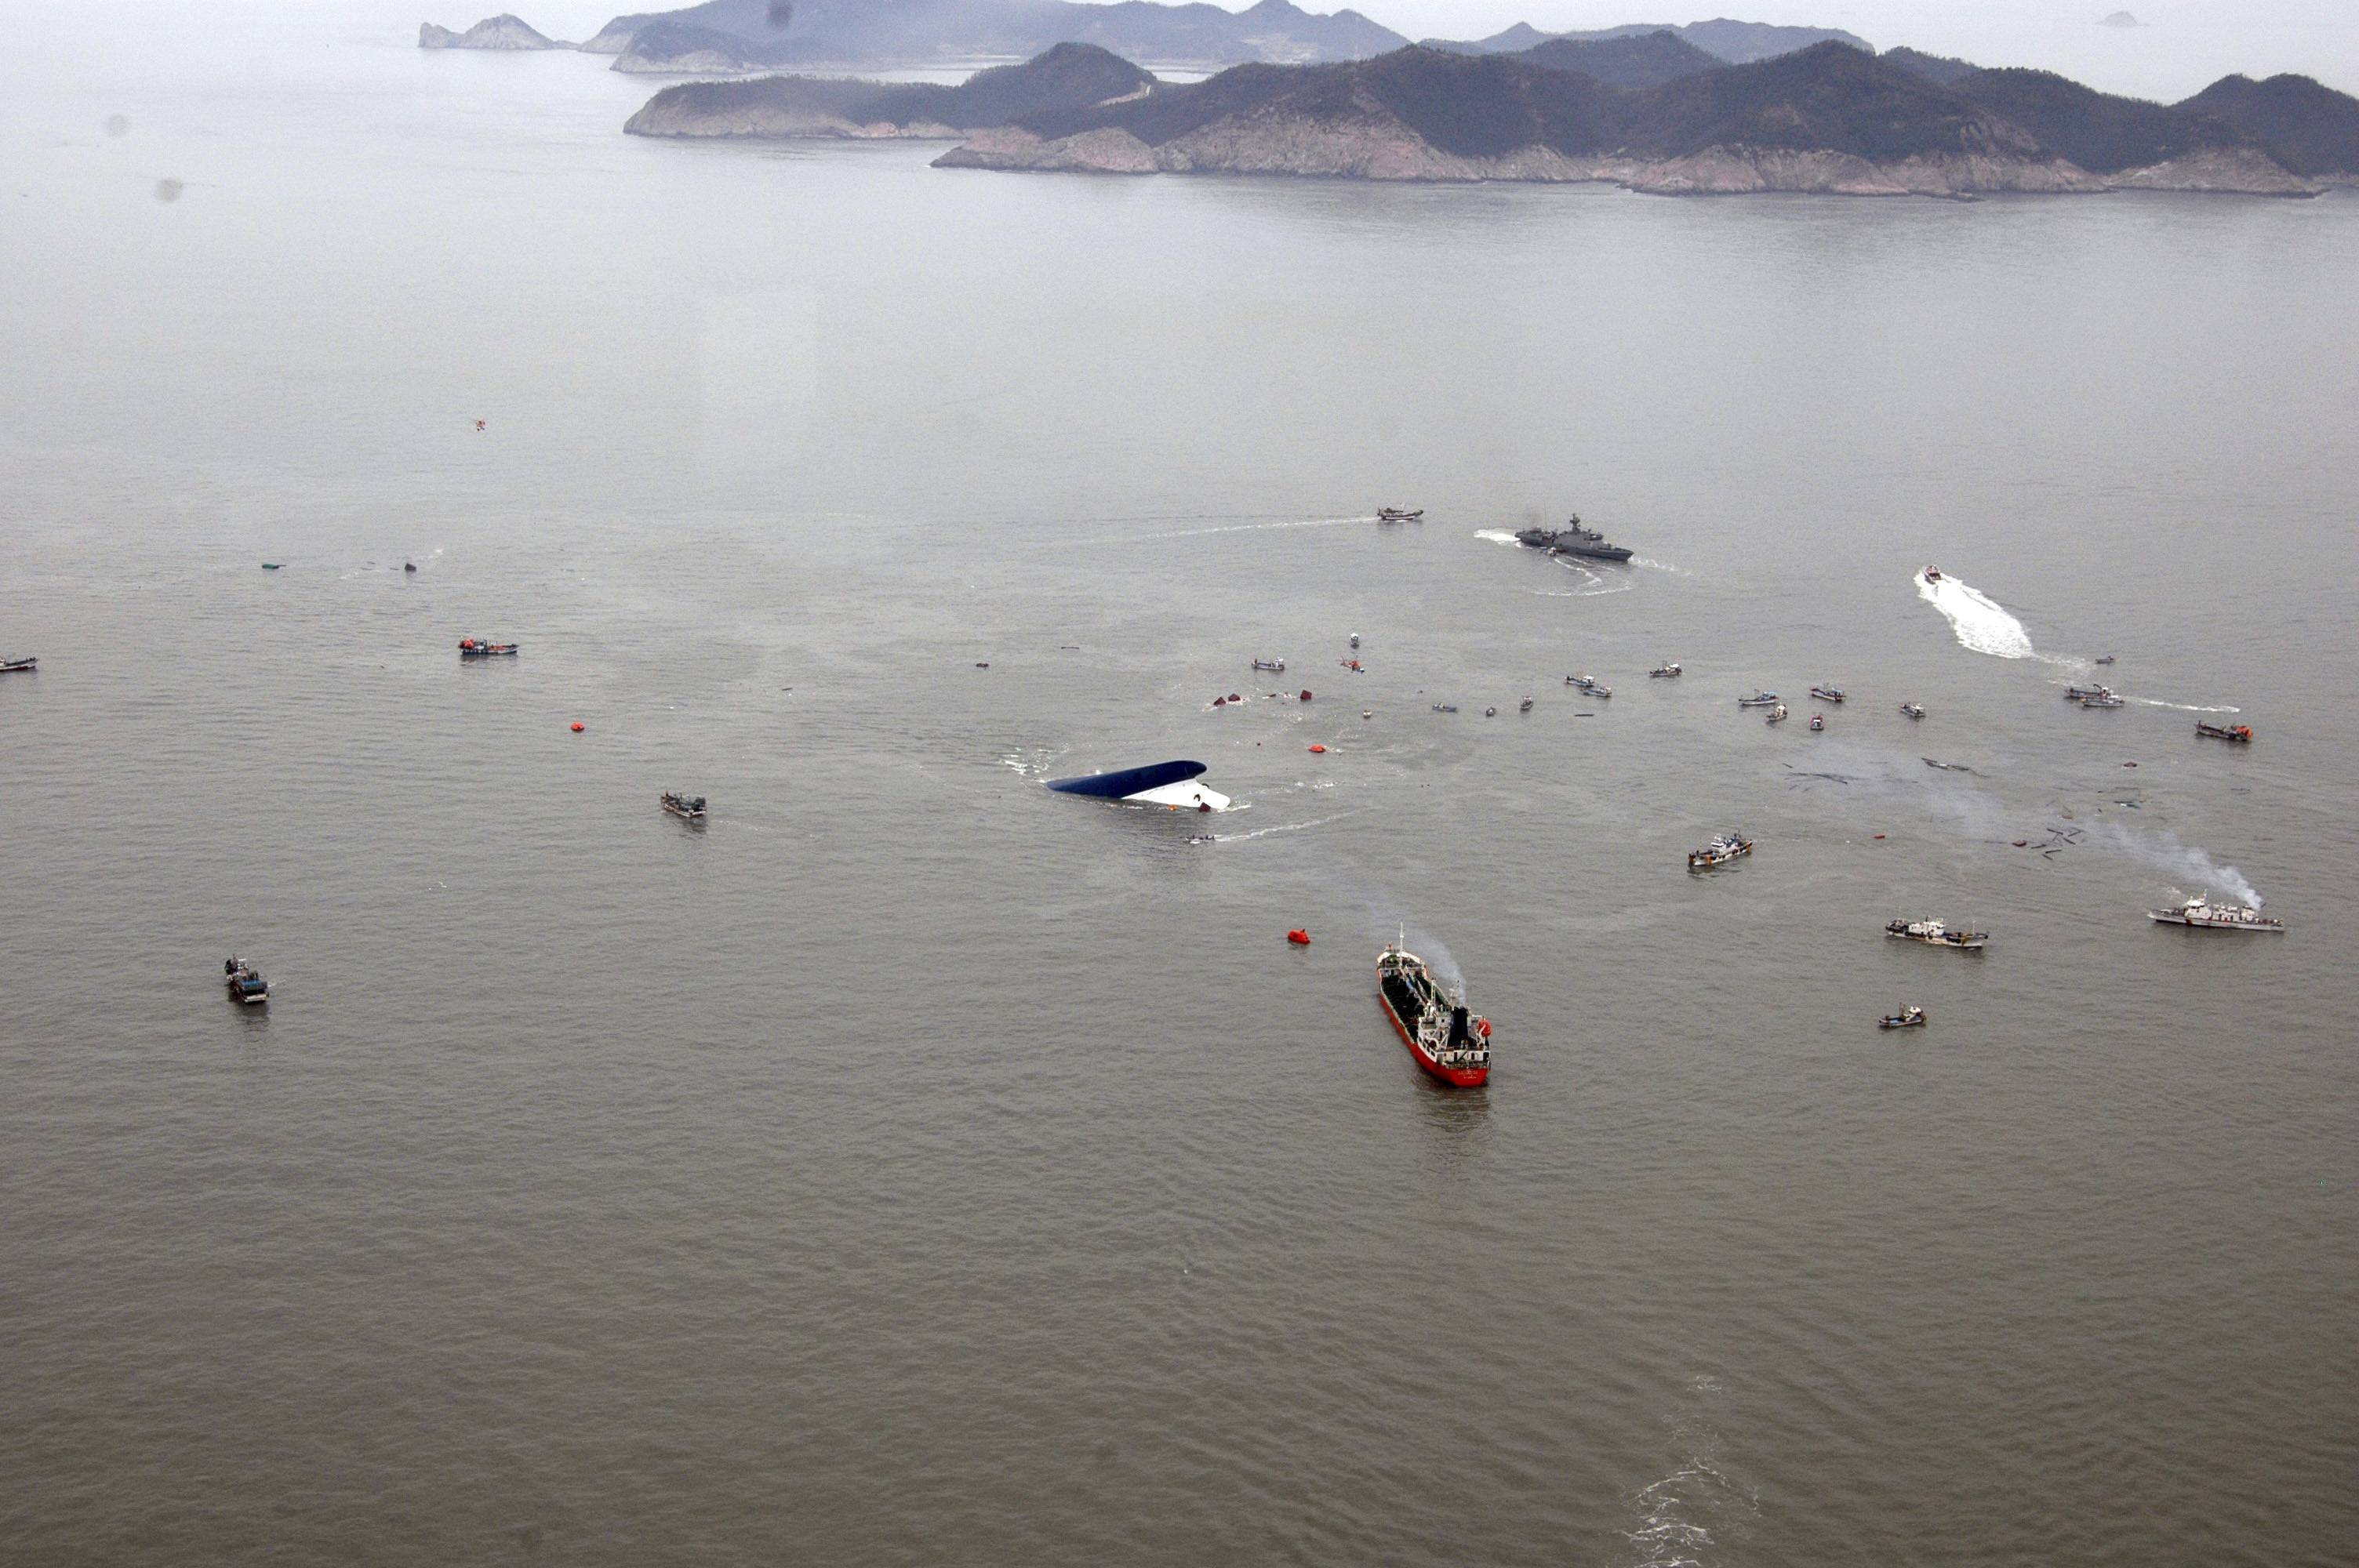 In this photo released by South Korean Navy via Yonhap News Agency, South Korean rescue team boats and fishing boats try to rescue passengers of a ferry sinking off South Korea's southern coast, in the water off the southern coast near Jindo, south of Seoul, Wednesday, April 16, 2014. Nearly 300 people were still missing Wednesday several hours after a ferry carrying 477, most of them high school students, sank in cold waters off South Korea's southern coast.